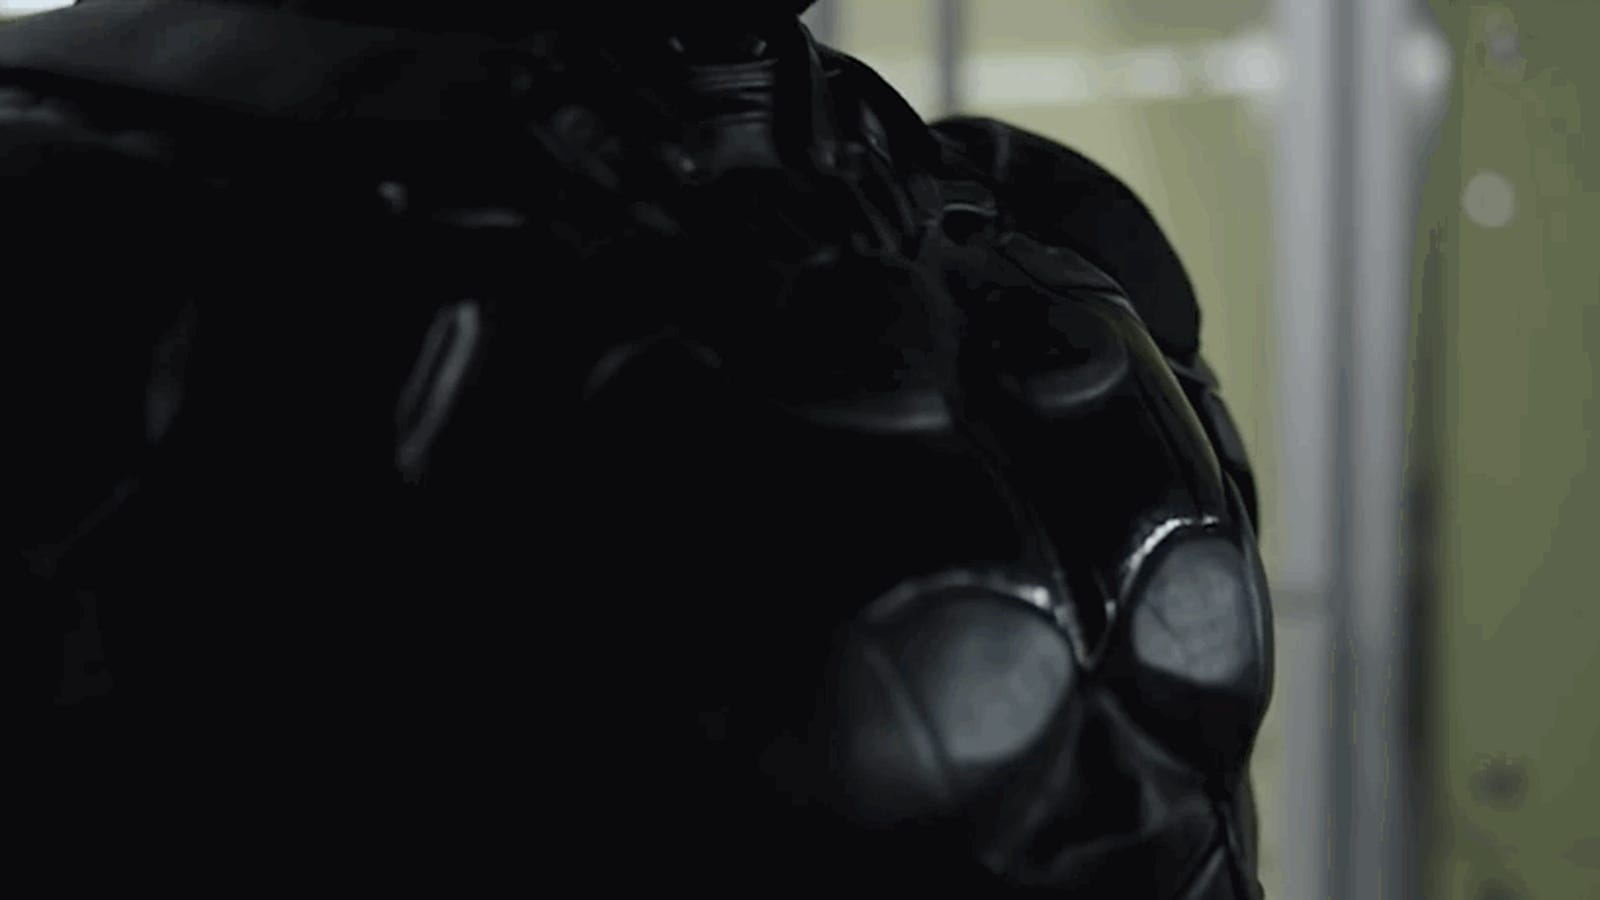 A Look at How Batman Has Totally Taken Over One Batfan's Life